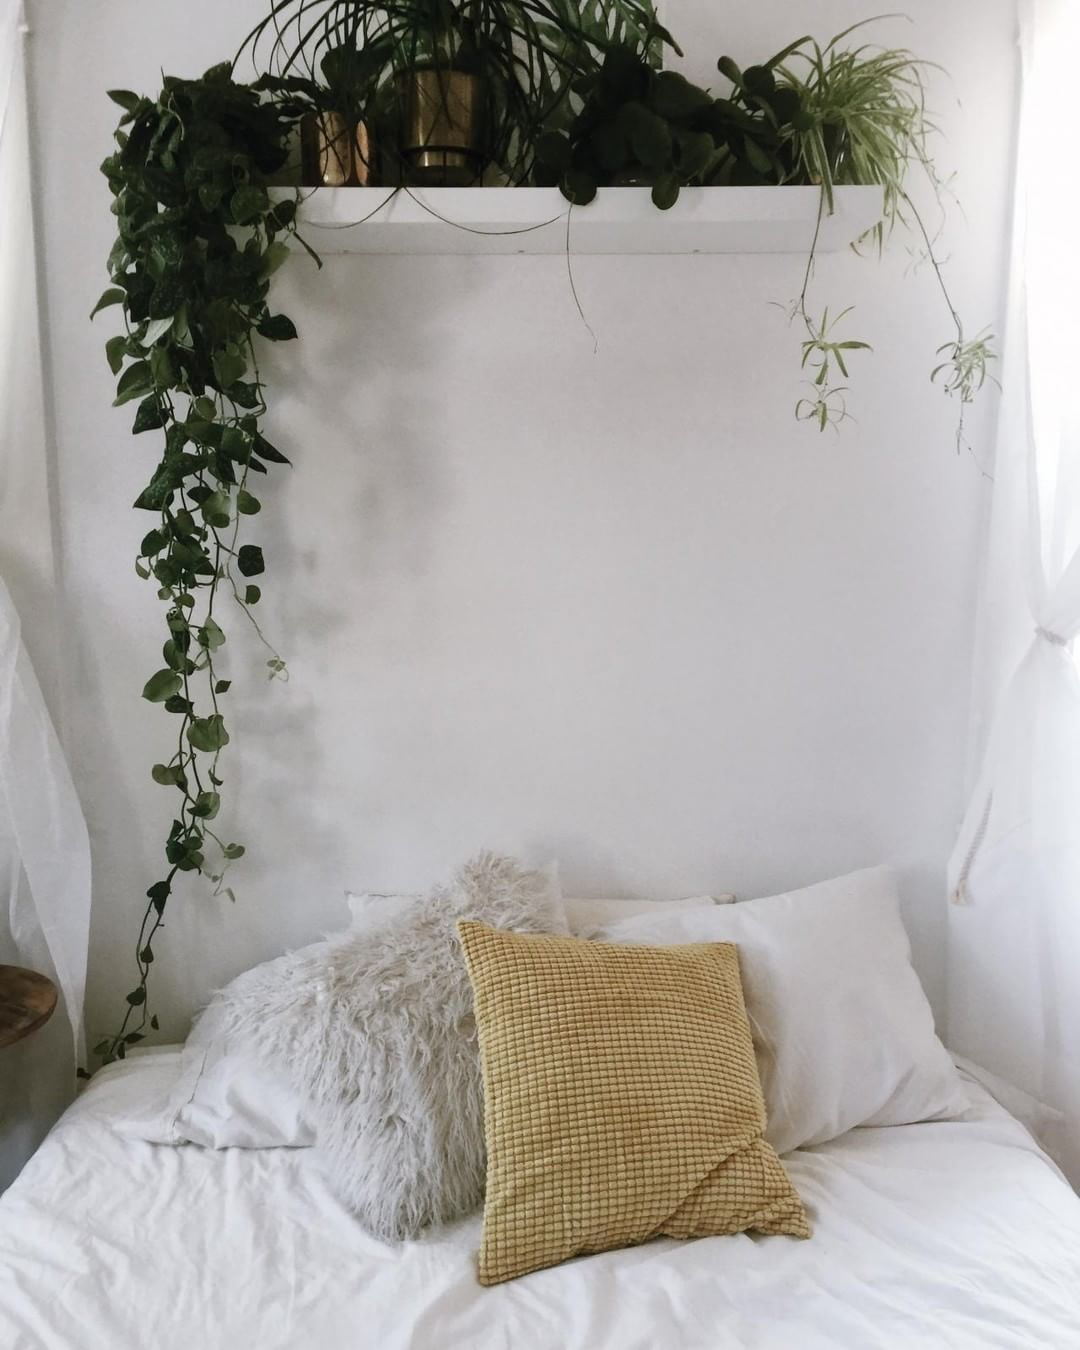 Pin by sydnee fogg on home pinterest bedroom room and home decor